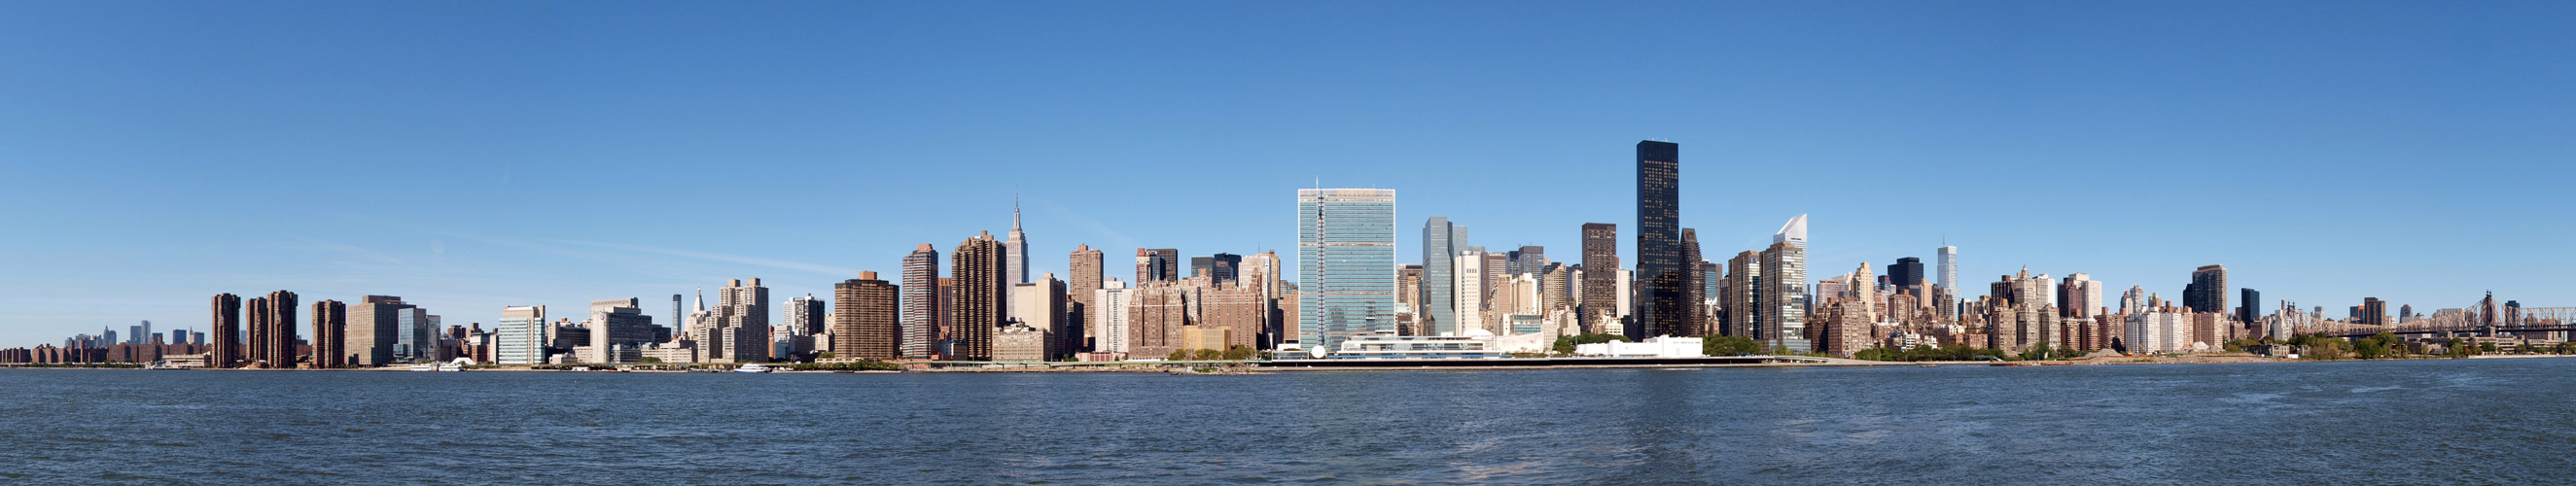 manhattan skyline foto bild north america united. Black Bedroom Furniture Sets. Home Design Ideas